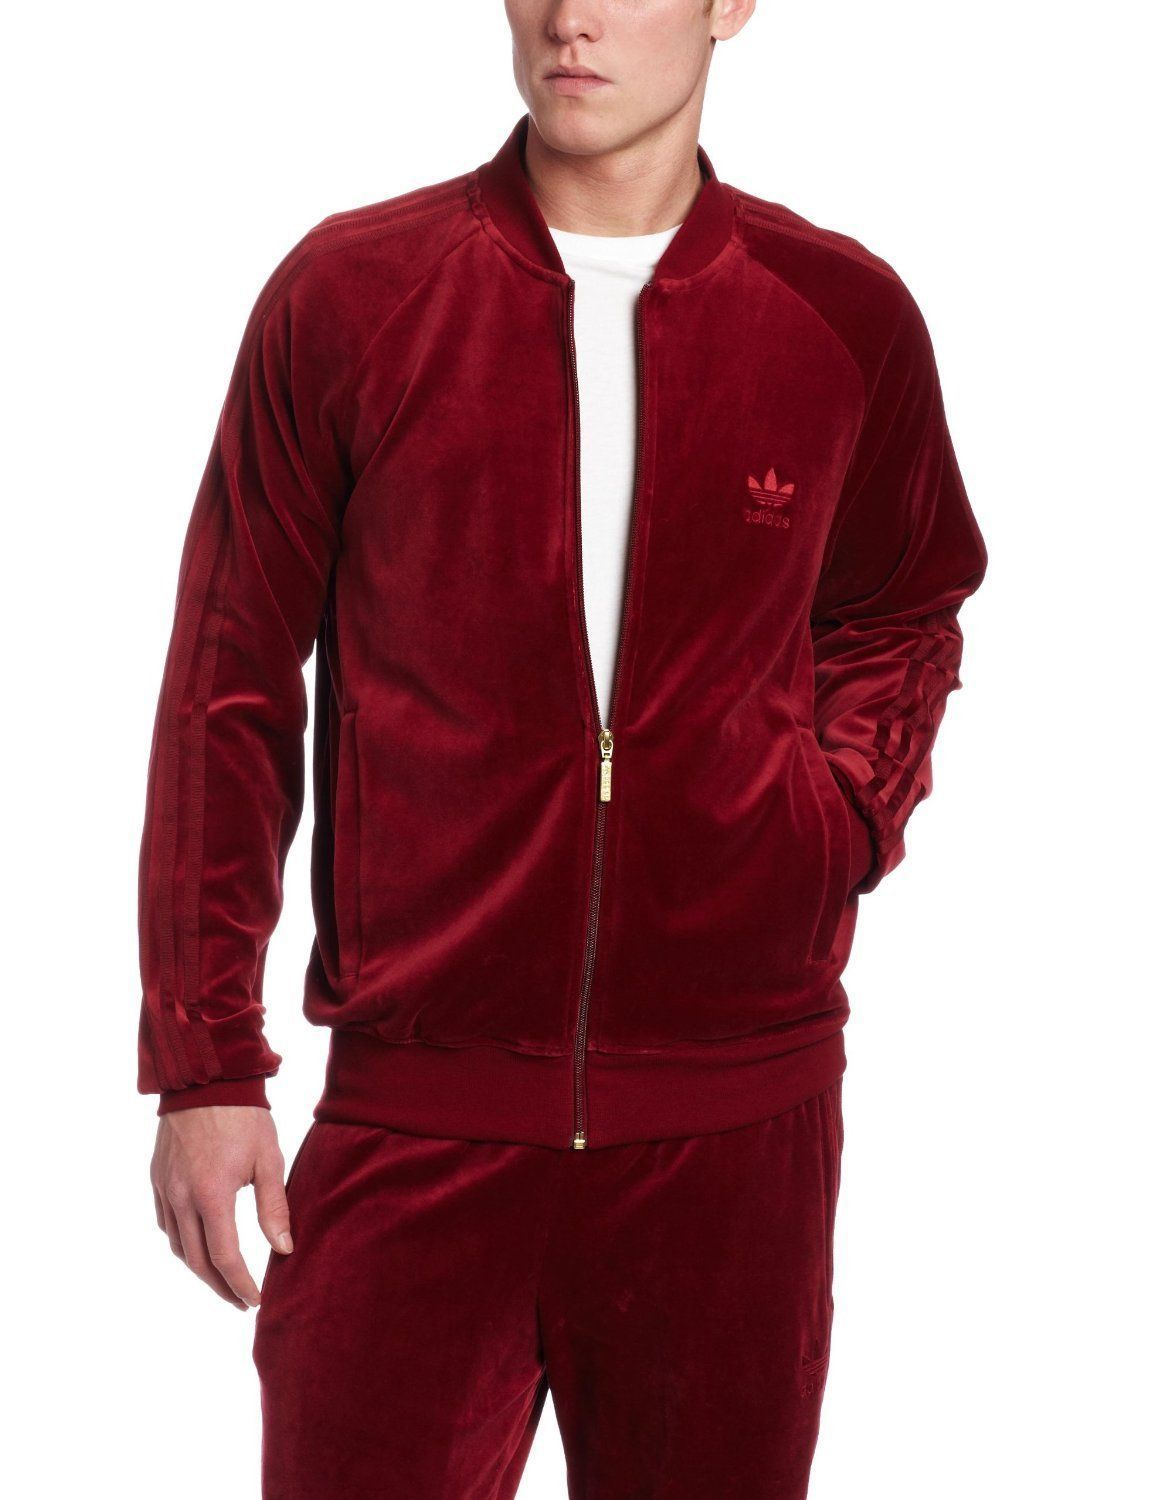 Details about ADIDAS ORIGINALS VELOUR BB TRACKTOP MAROON BNWT SIZE LARGE LAST ONE